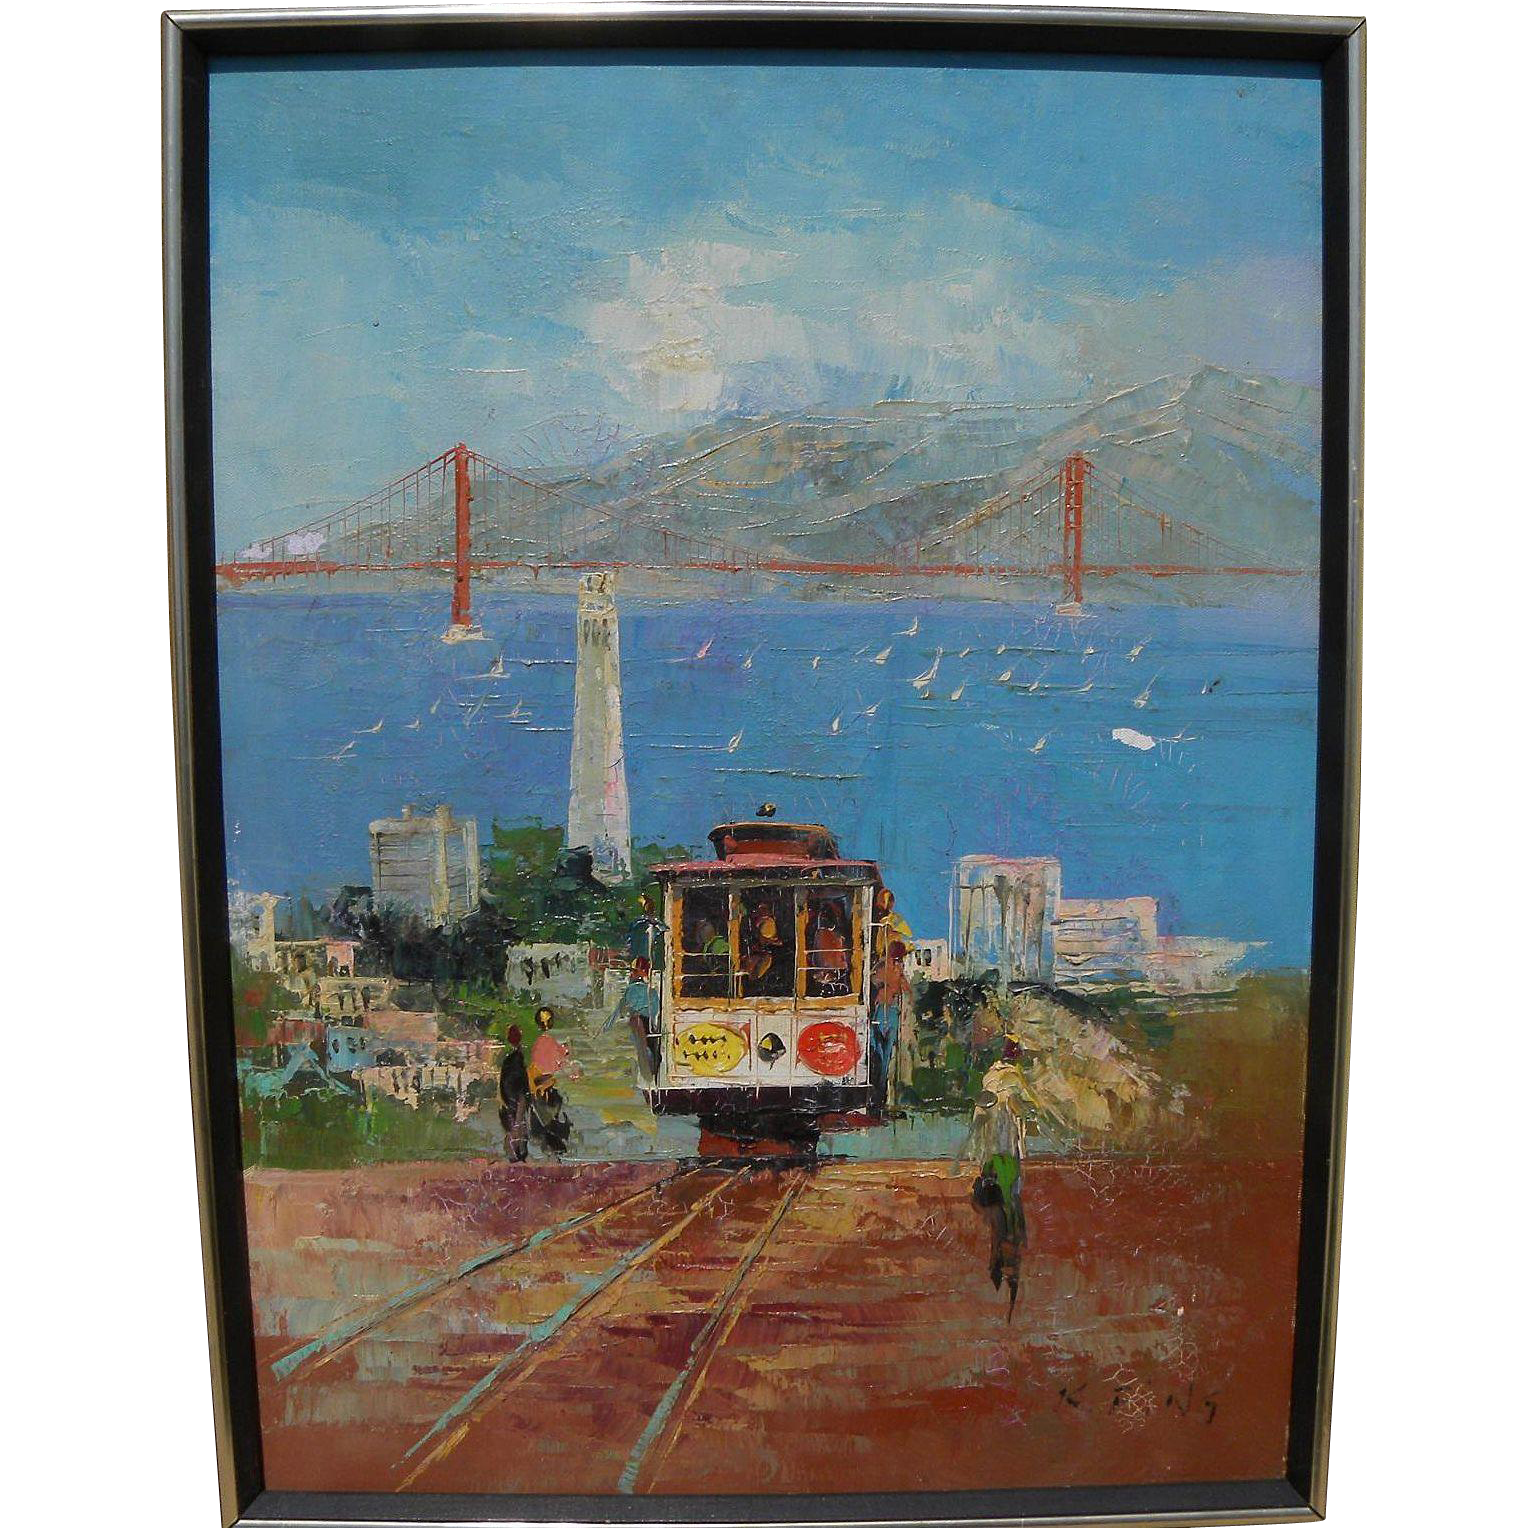 KEE FUNG NG (1941-) impressionist painting of San Francisco California by noted Chinese emigrant artist